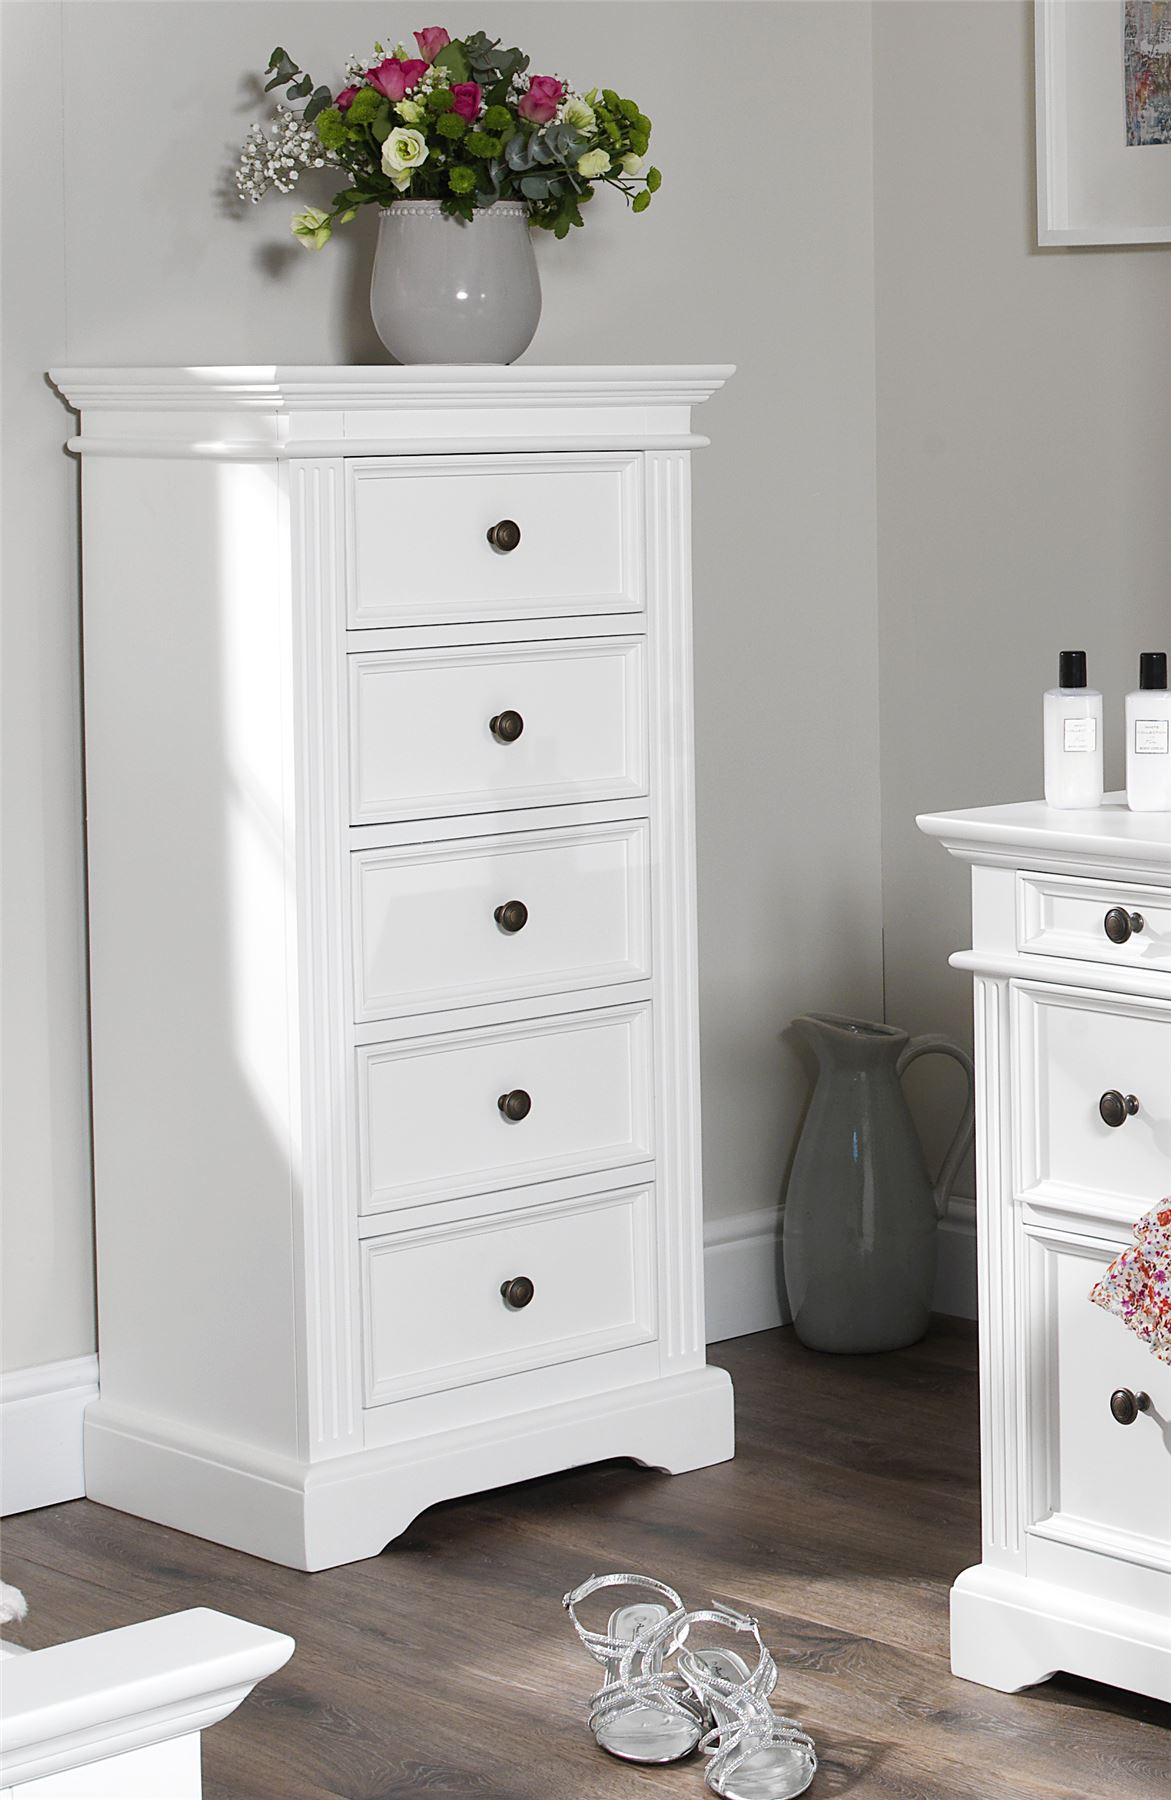 White Bedroom Furniture Uk gainsborough white bedroom furniture, bedside cabinets,chest of